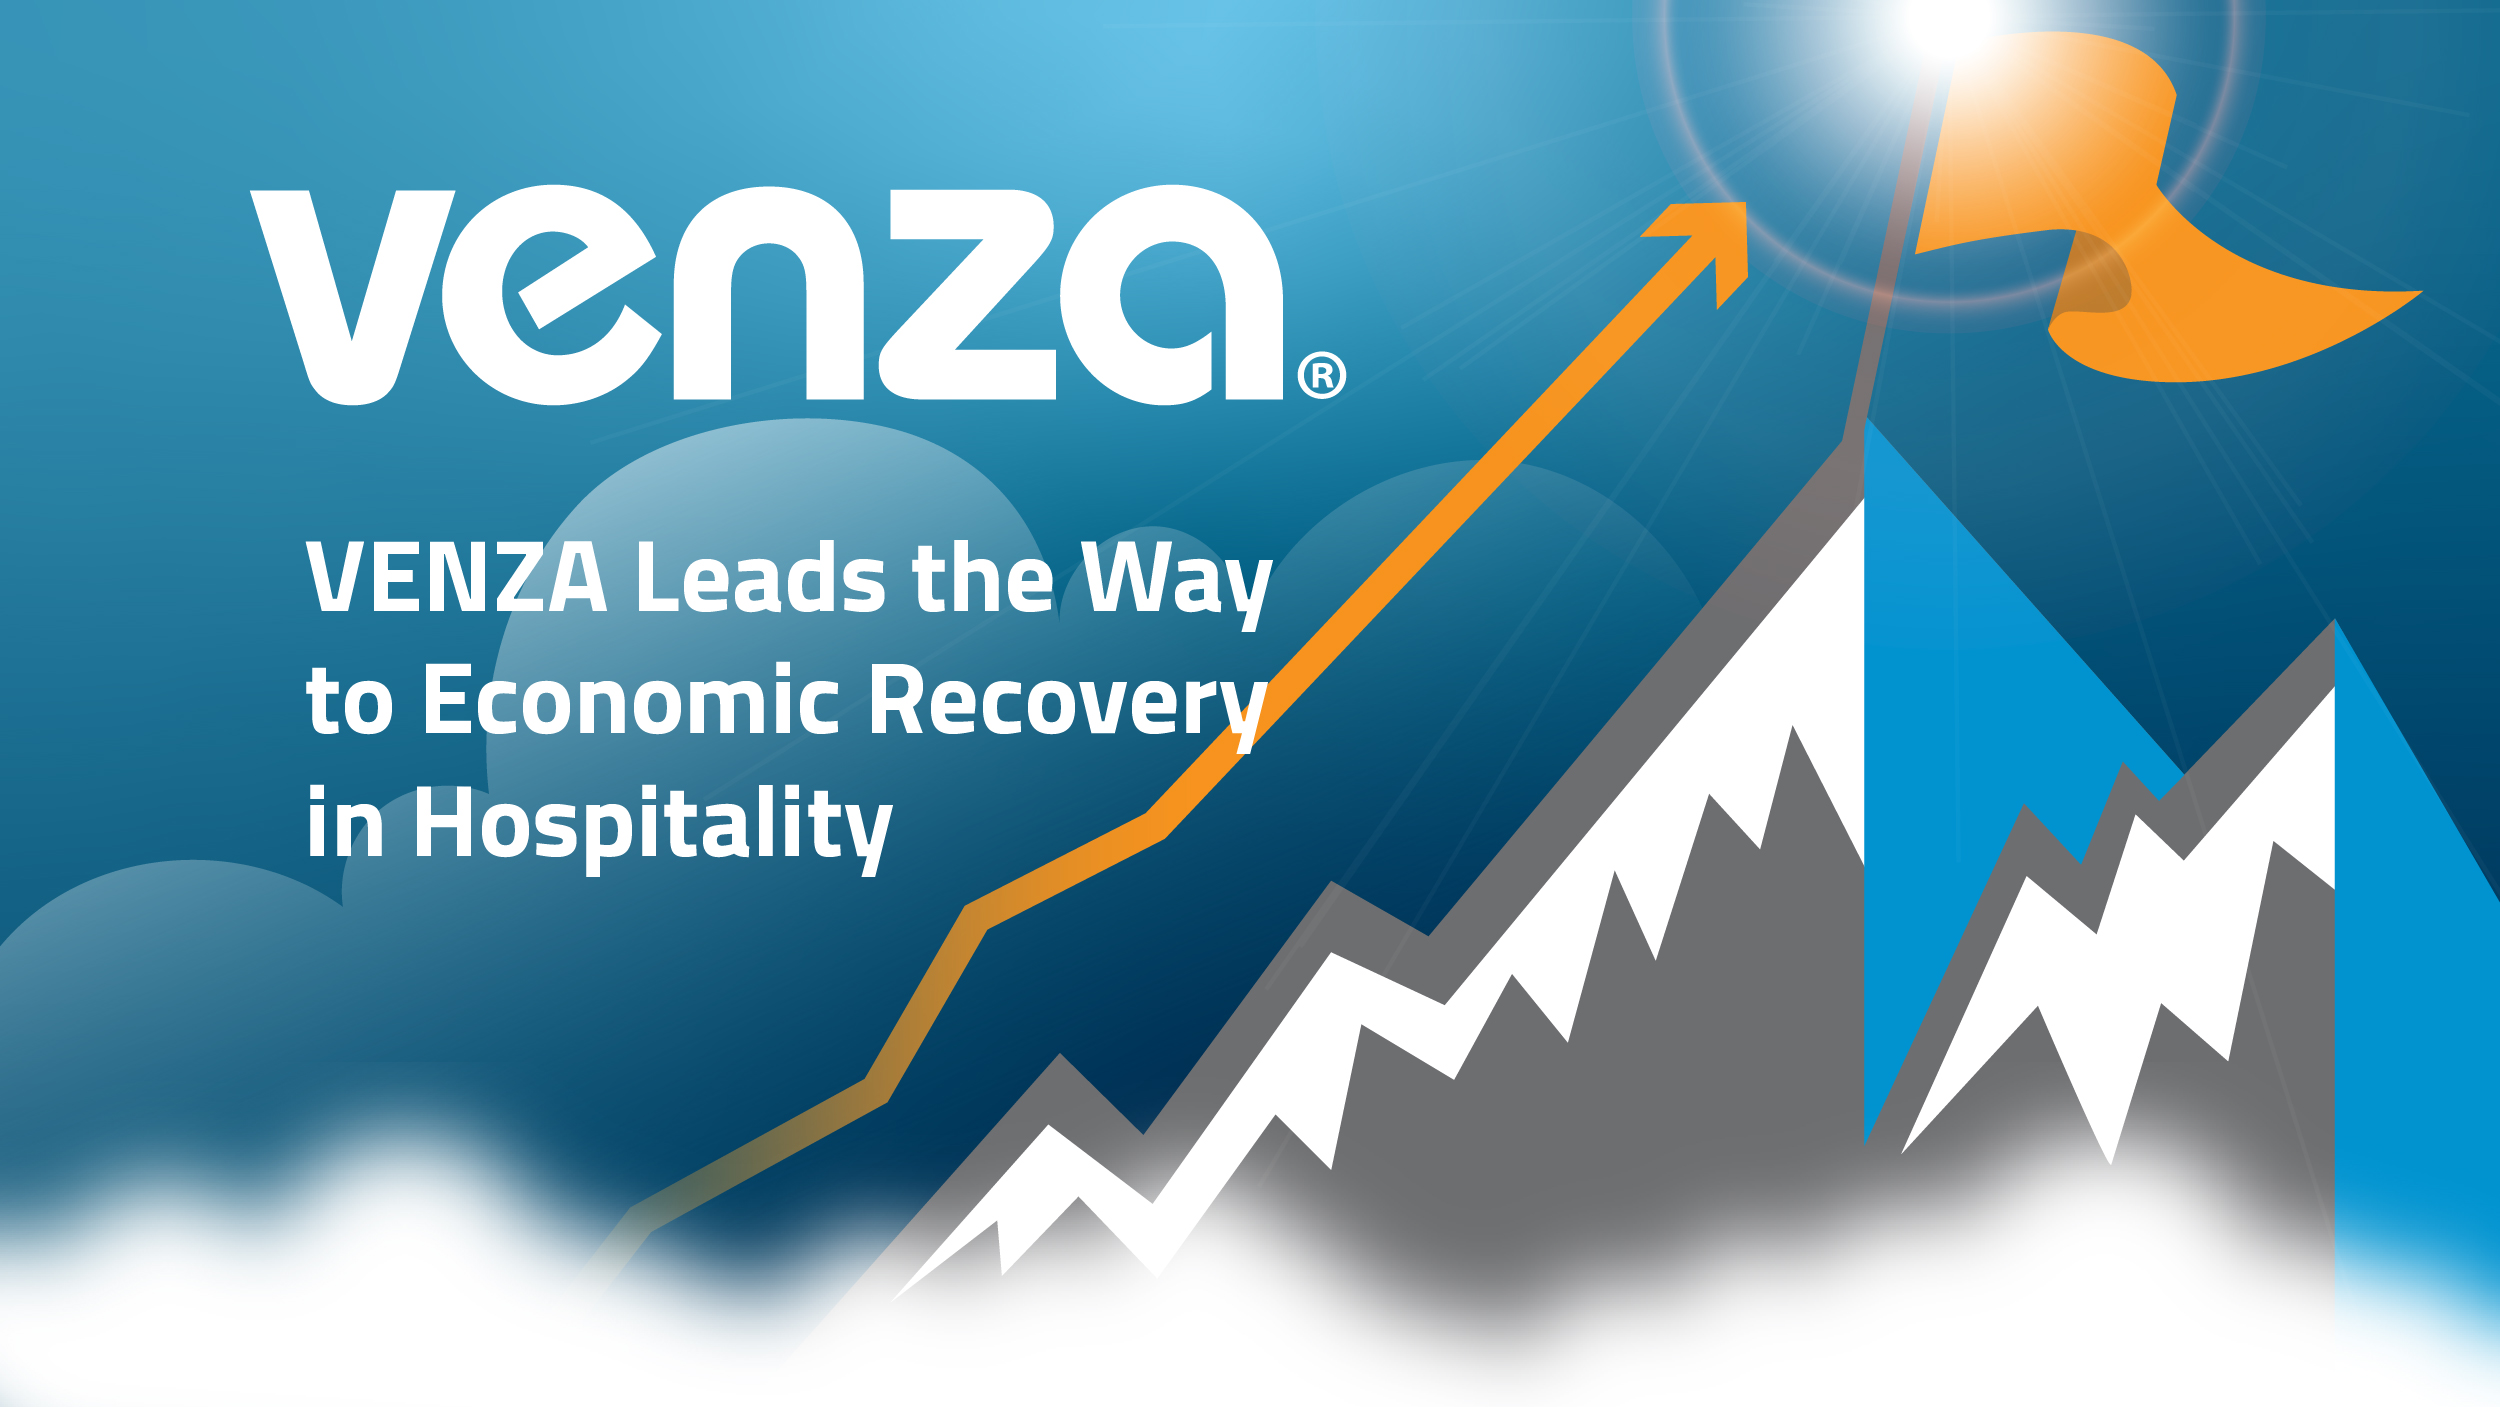 VENZA Leads the Way to Economic Recovery in Hospitality